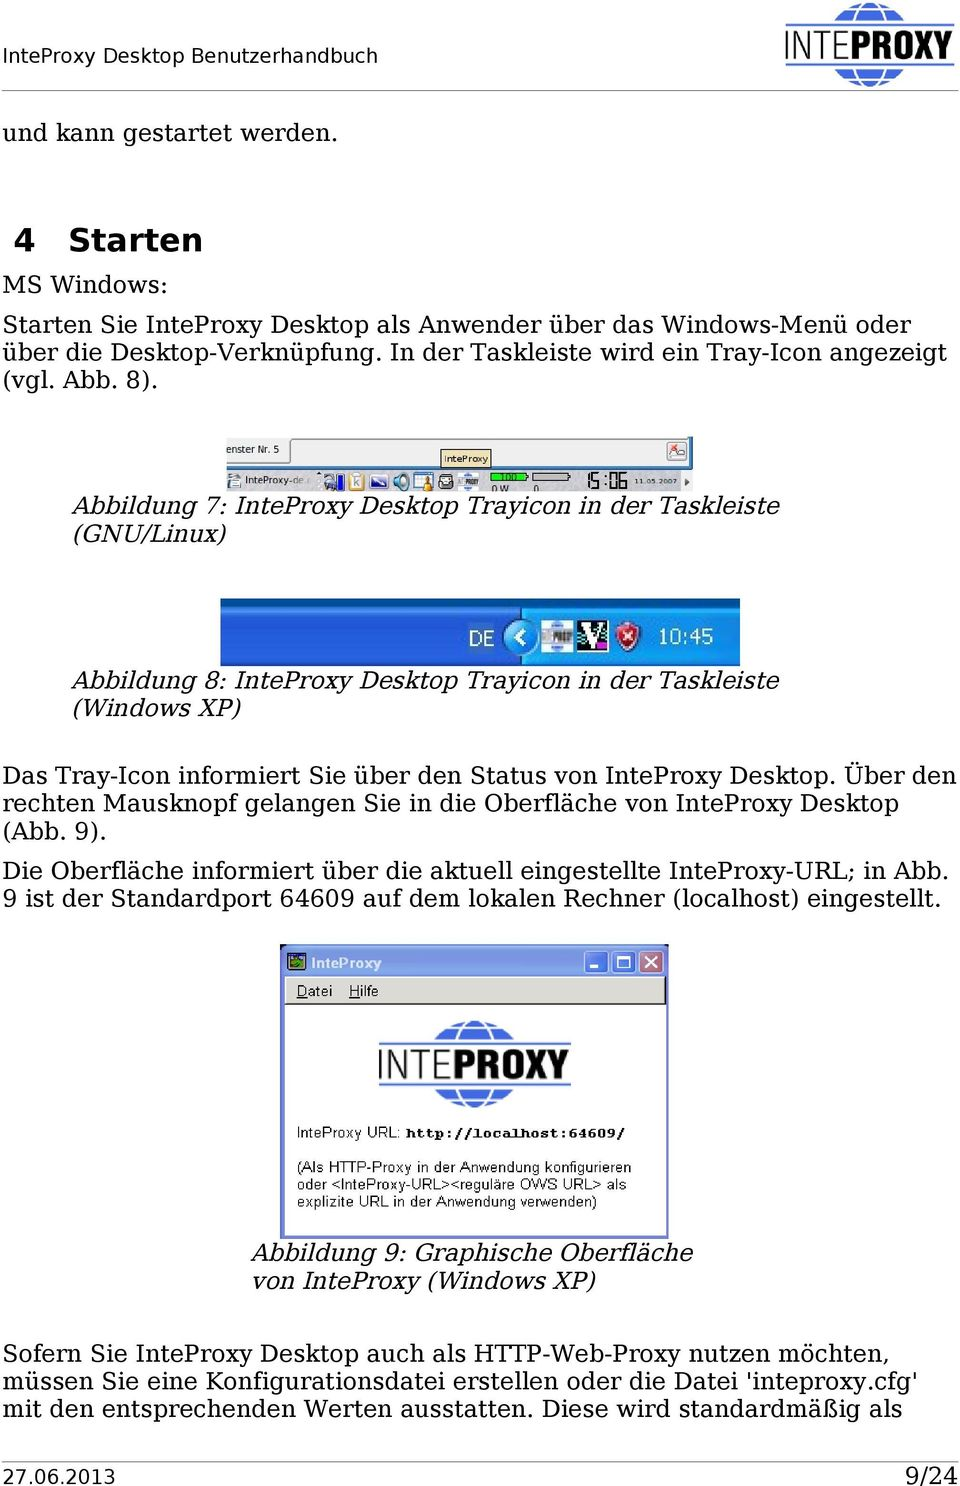 Abbildung 7: InteProxy Desktop Trayicon in der Taskleiste (GNU/Linux) Abbildung 8: InteProxy Desktop Trayicon in der Taskleiste (Windows XP) Das Tray-Icon informiert Sie über den Status von InteProxy